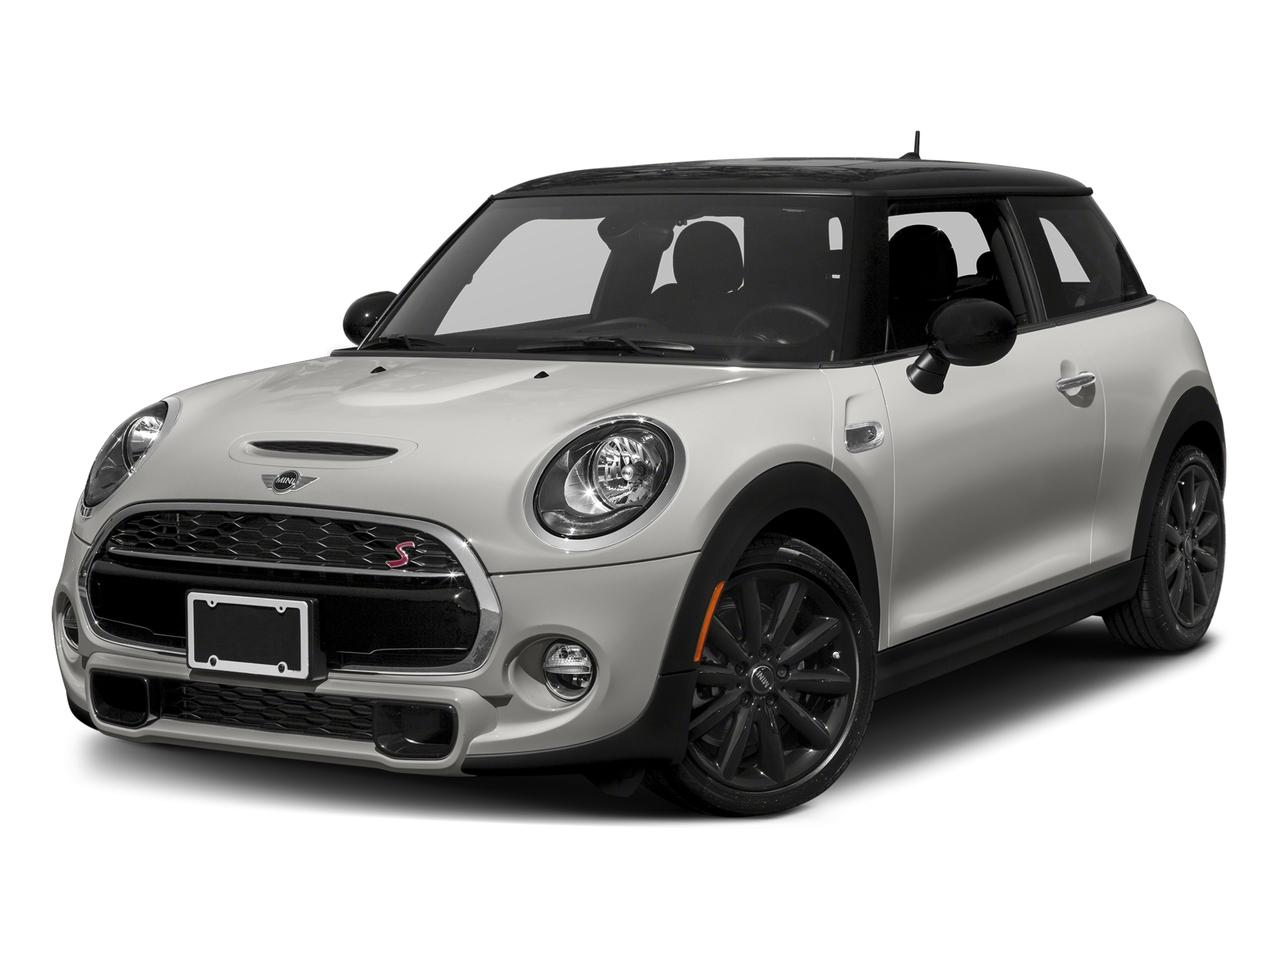 2016 MINI Cooper S Hardtop Vehicle Photo in Tucson, AZ 85711